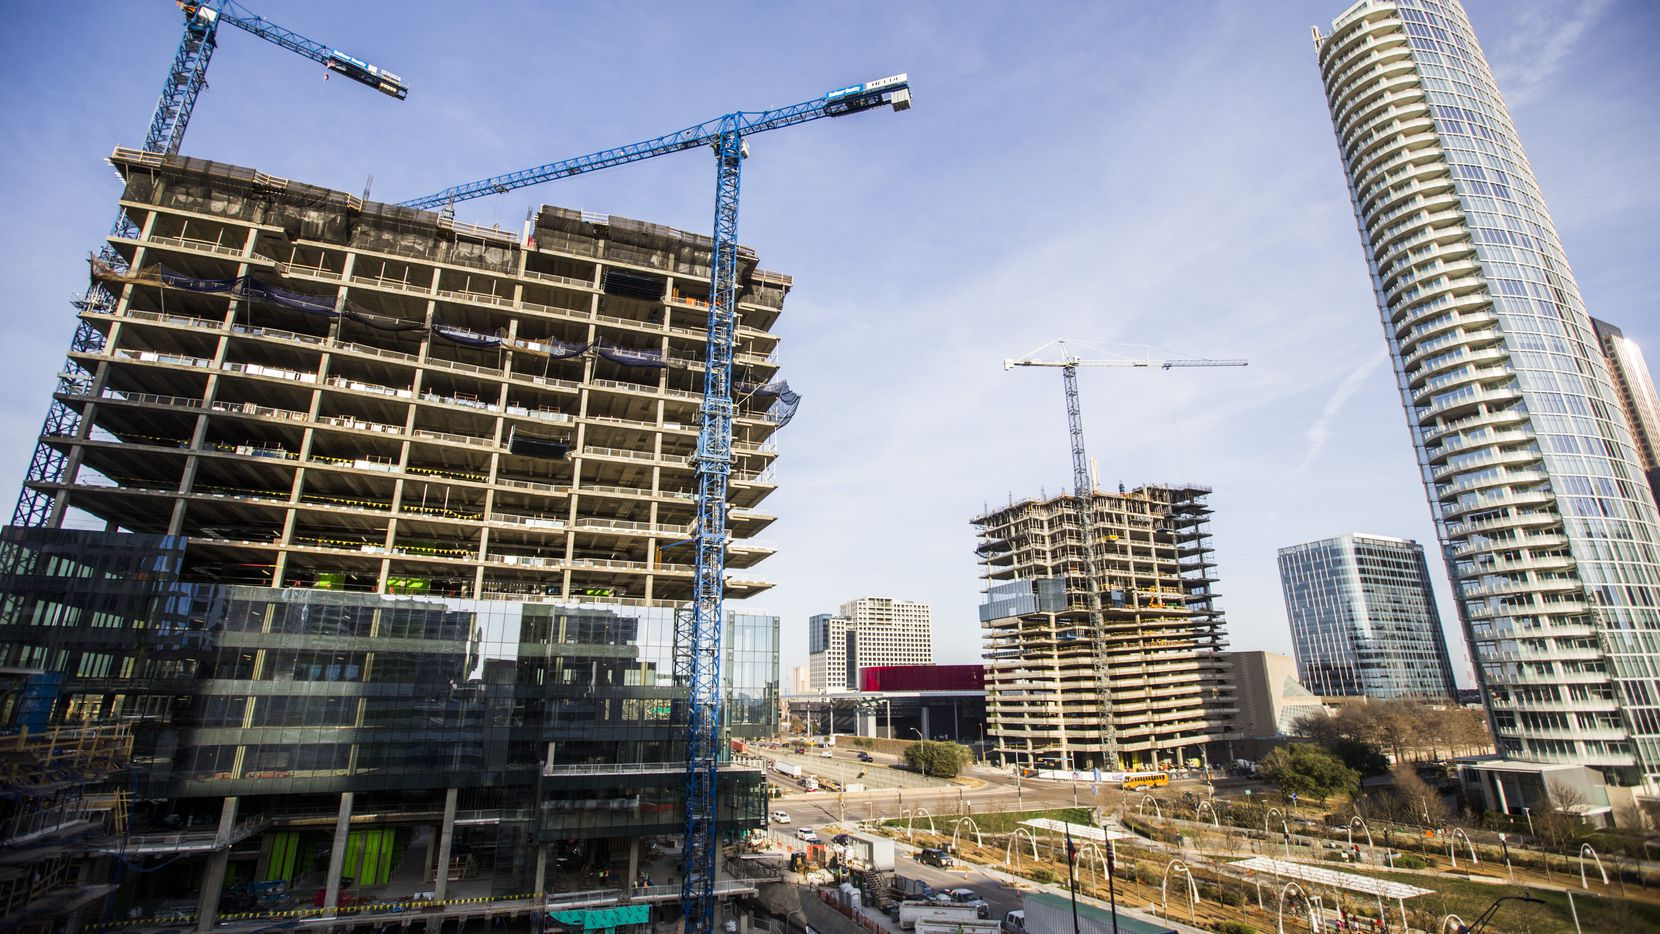 Almost 6 million square feet of office space is being built in the Dallas-Fort Worth area, one of the highest construction volumes in the country.